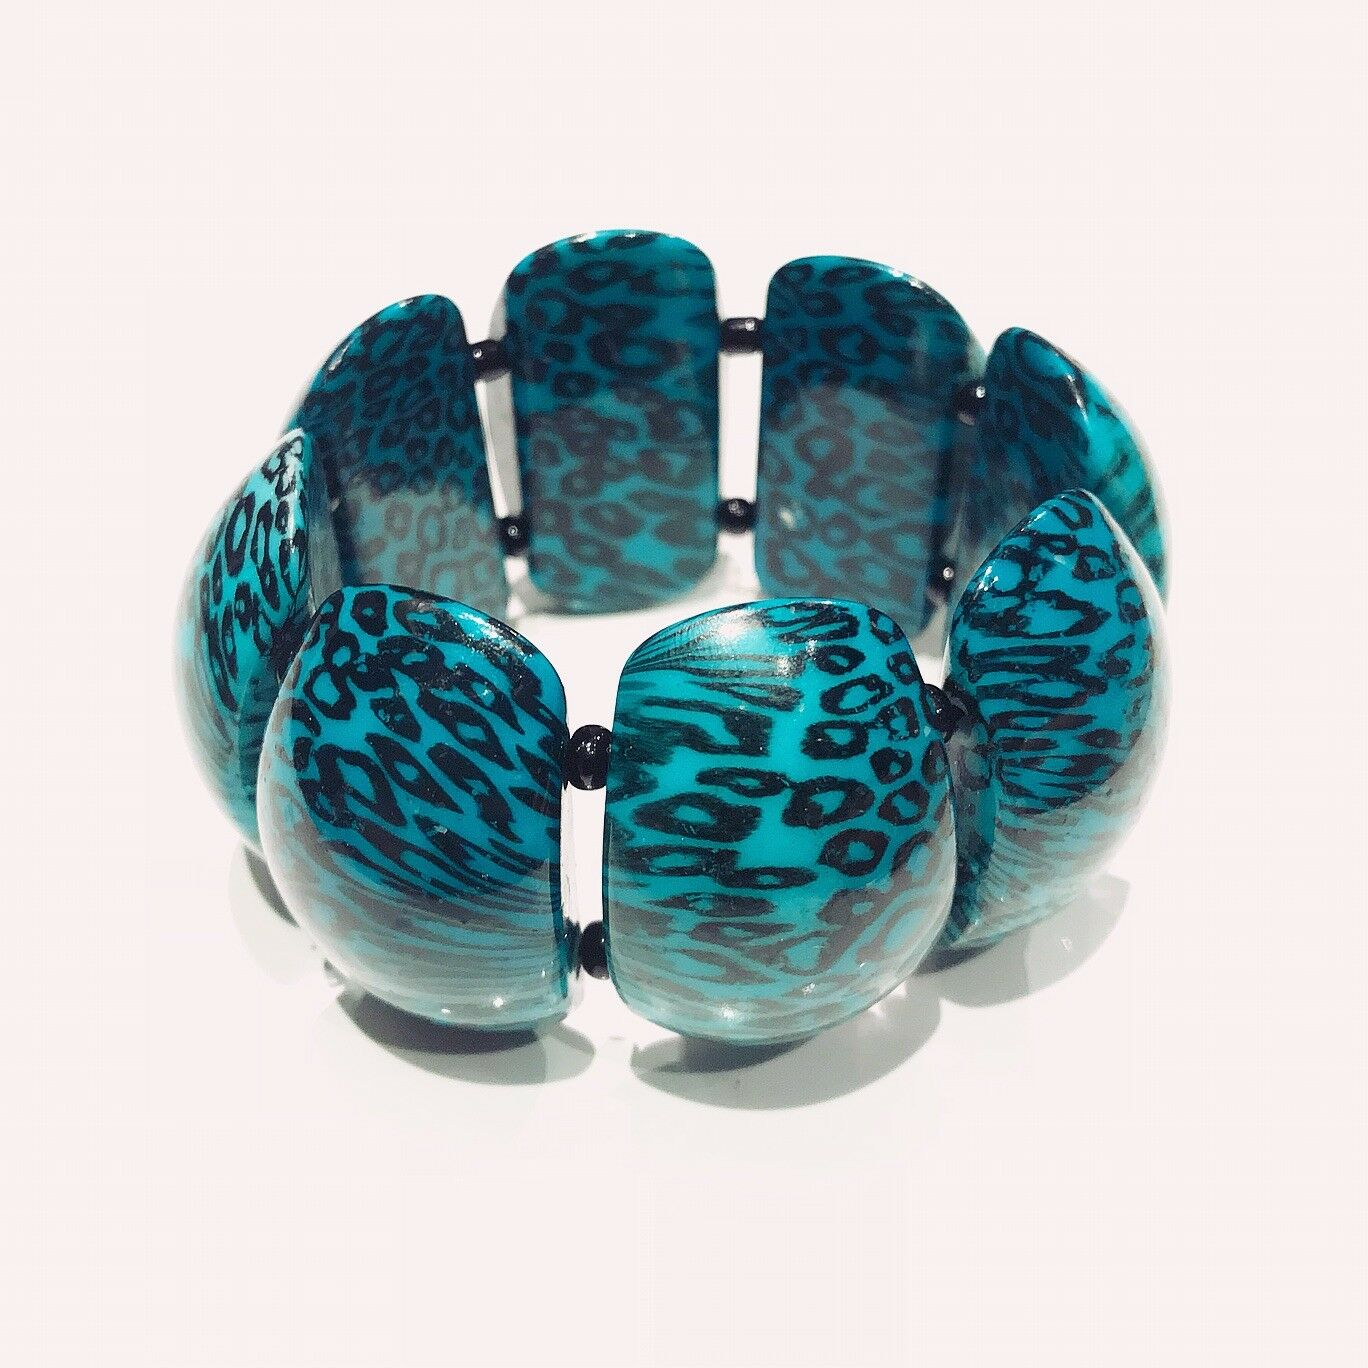 VINTAGE JEWELRY - 1980s Retro Patterned Turquoise… - image 2